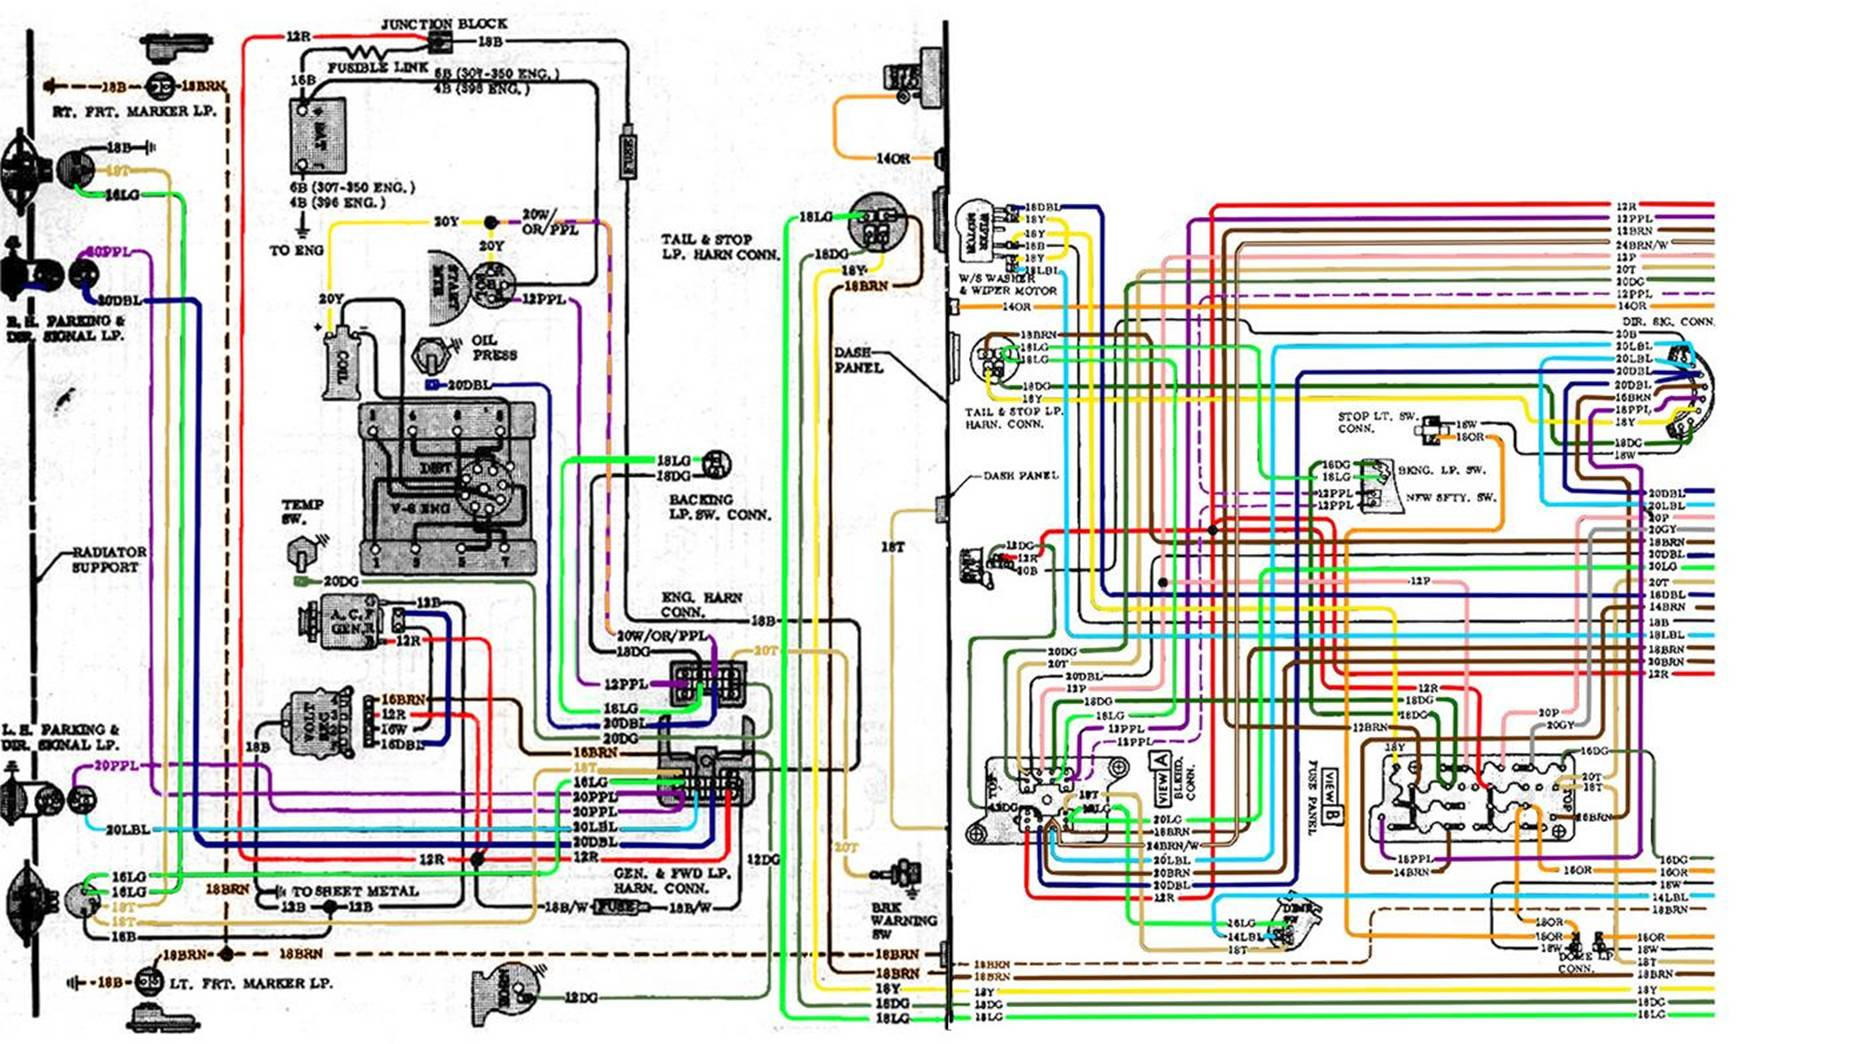 hight resolution of 1972 chevelle wiring harness diagram wiring diagram used 70 chevelle engine harness diagram 1970 chevelle wiring harness diagram